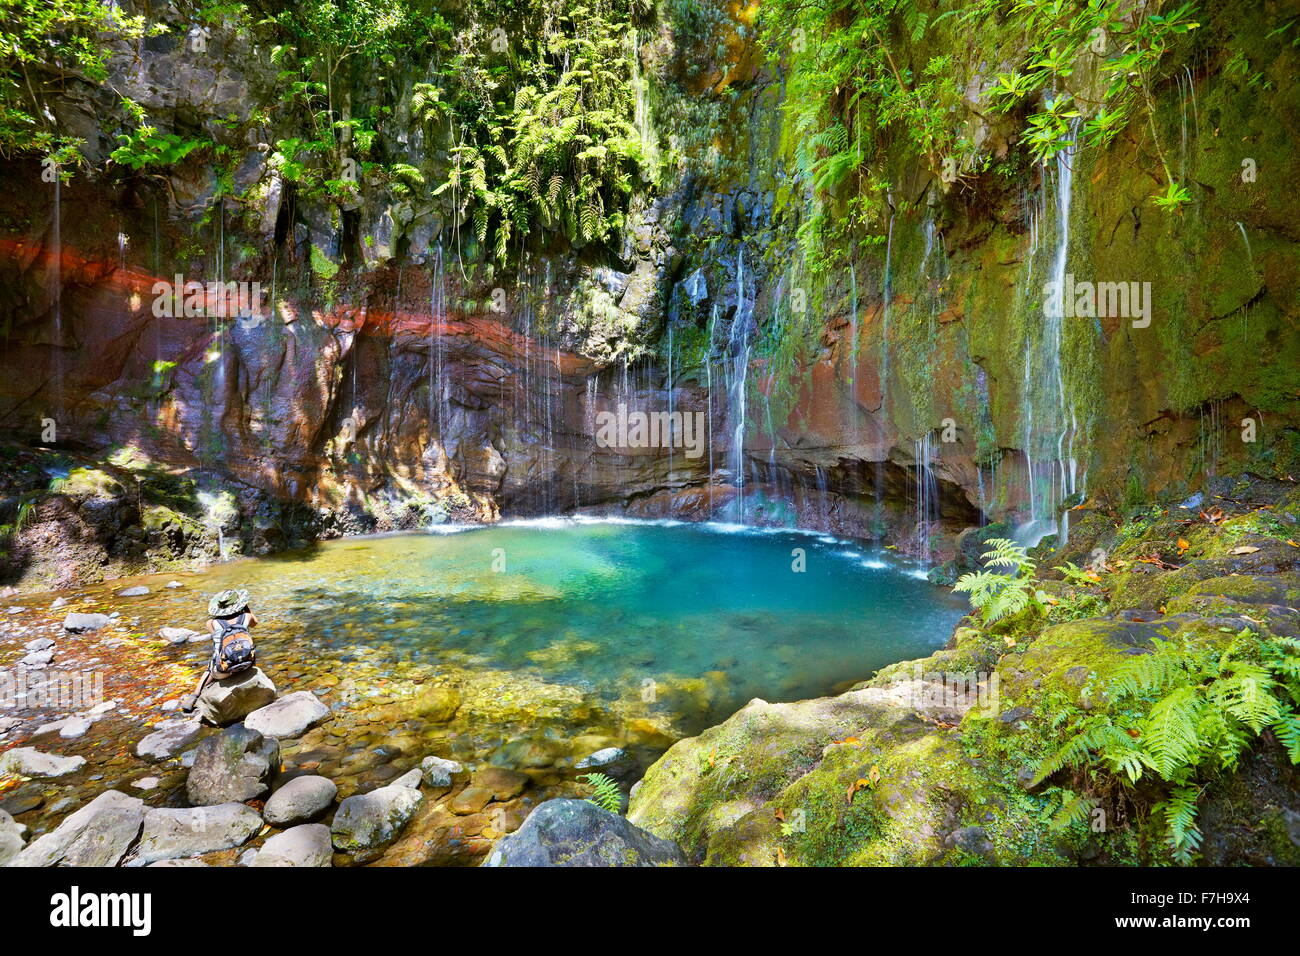 Tourist resting at the Levada 25 fountains, Rabacal, Madeira Island, Portugal - Stock Image